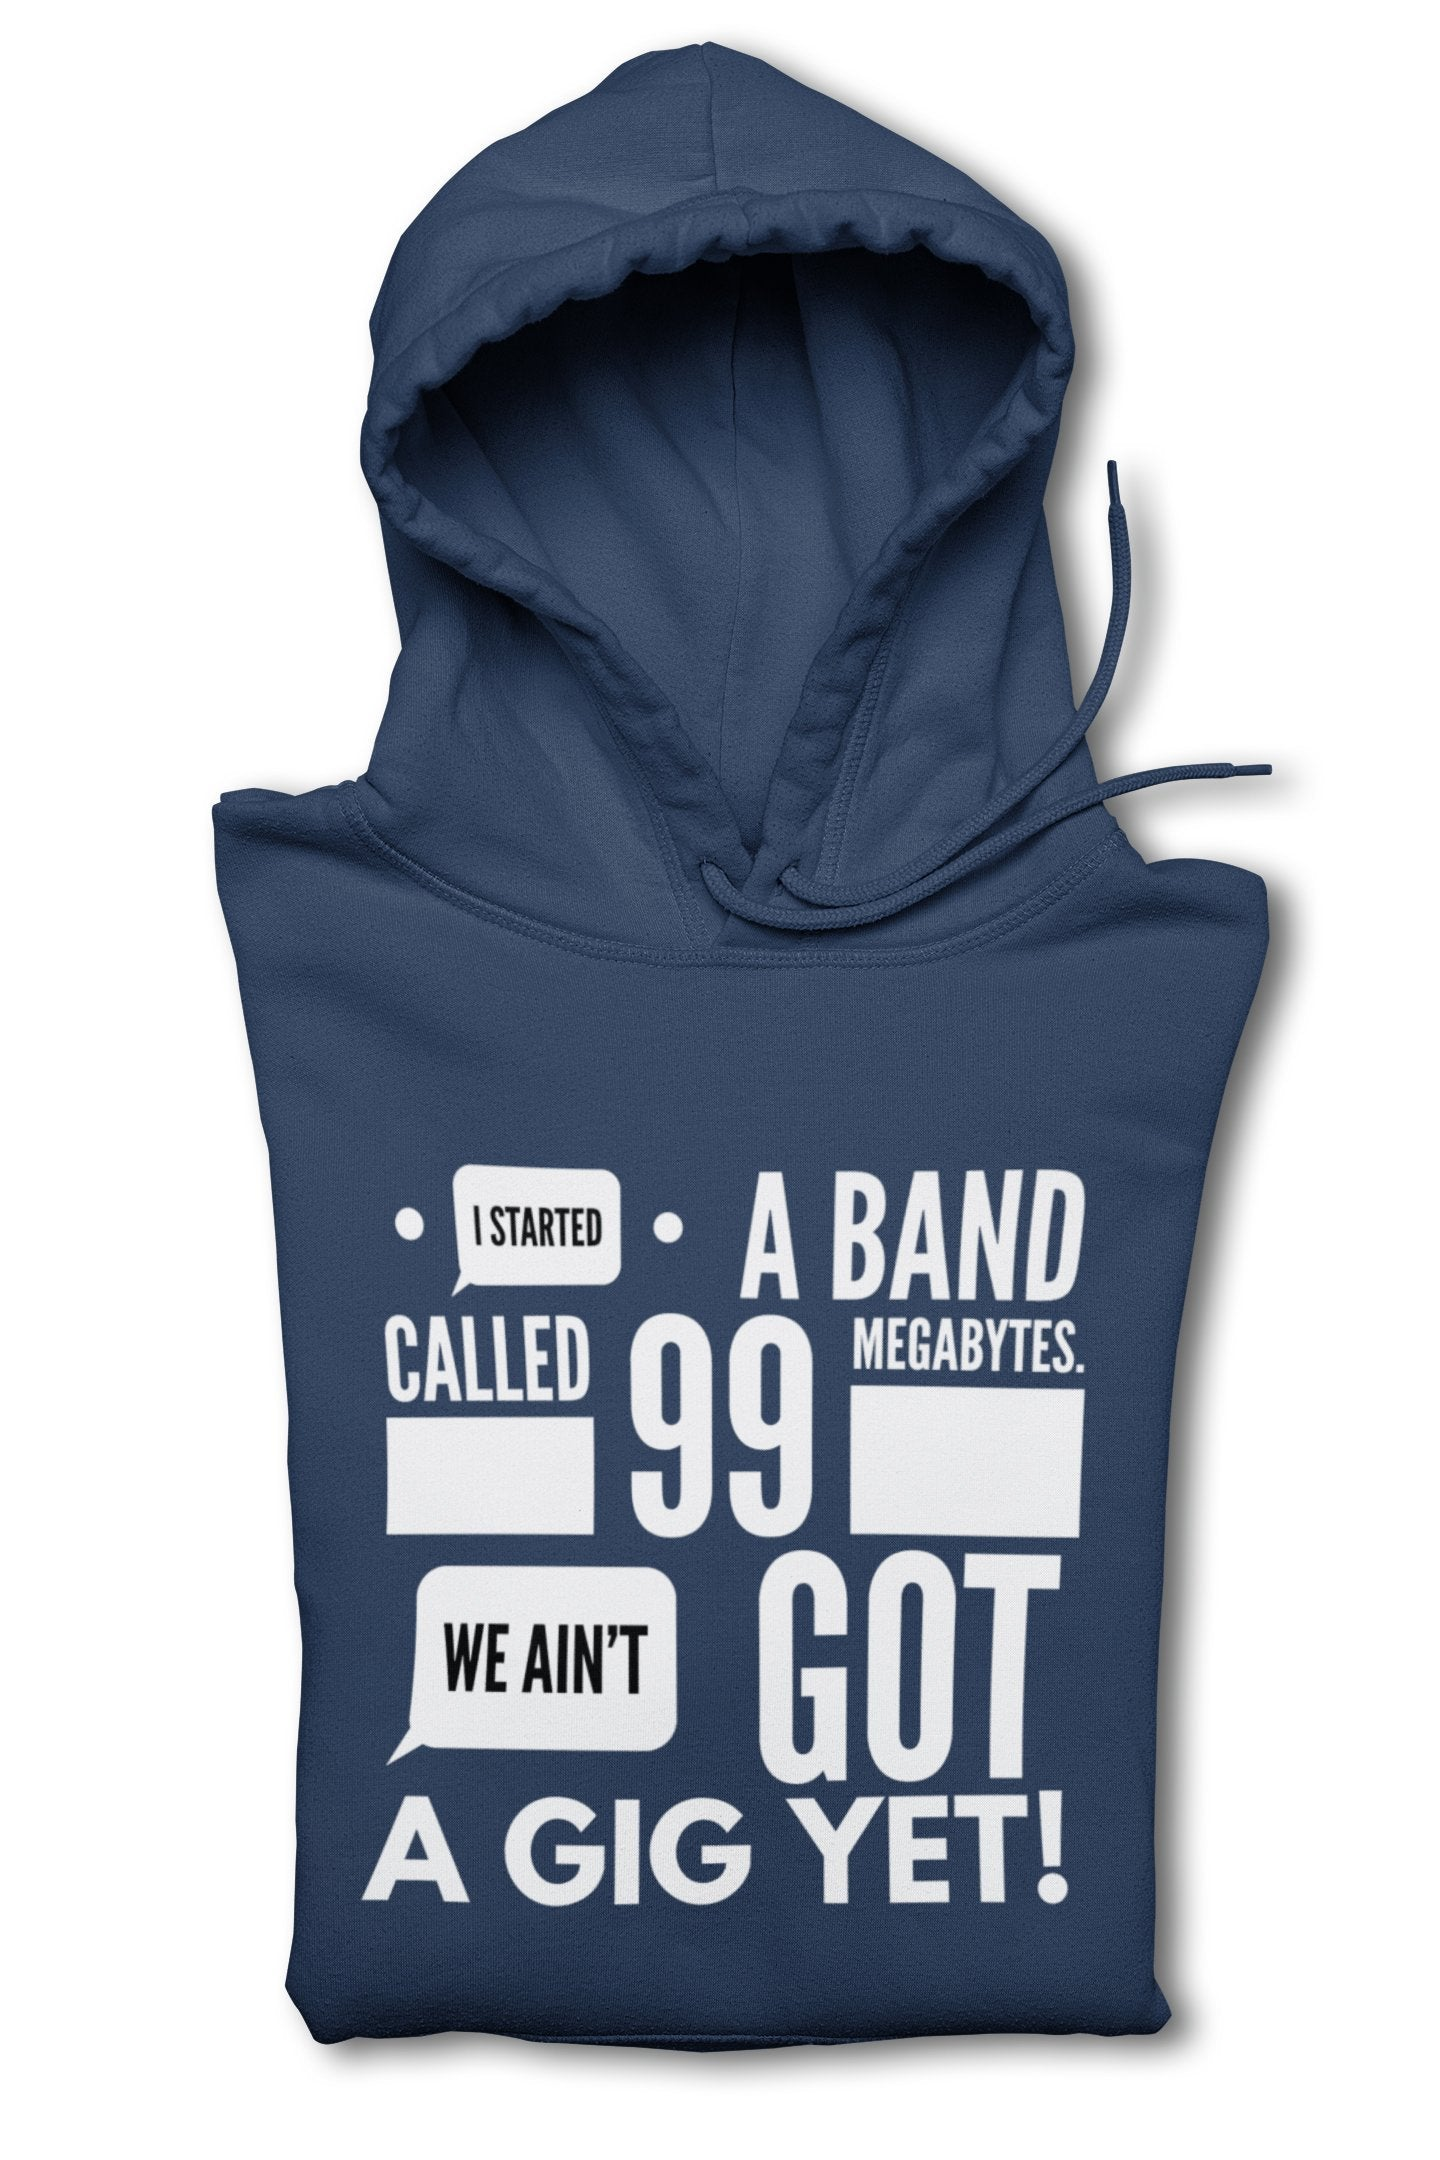 Aint got Gig Yet Clothing Printrove Navy Blue M